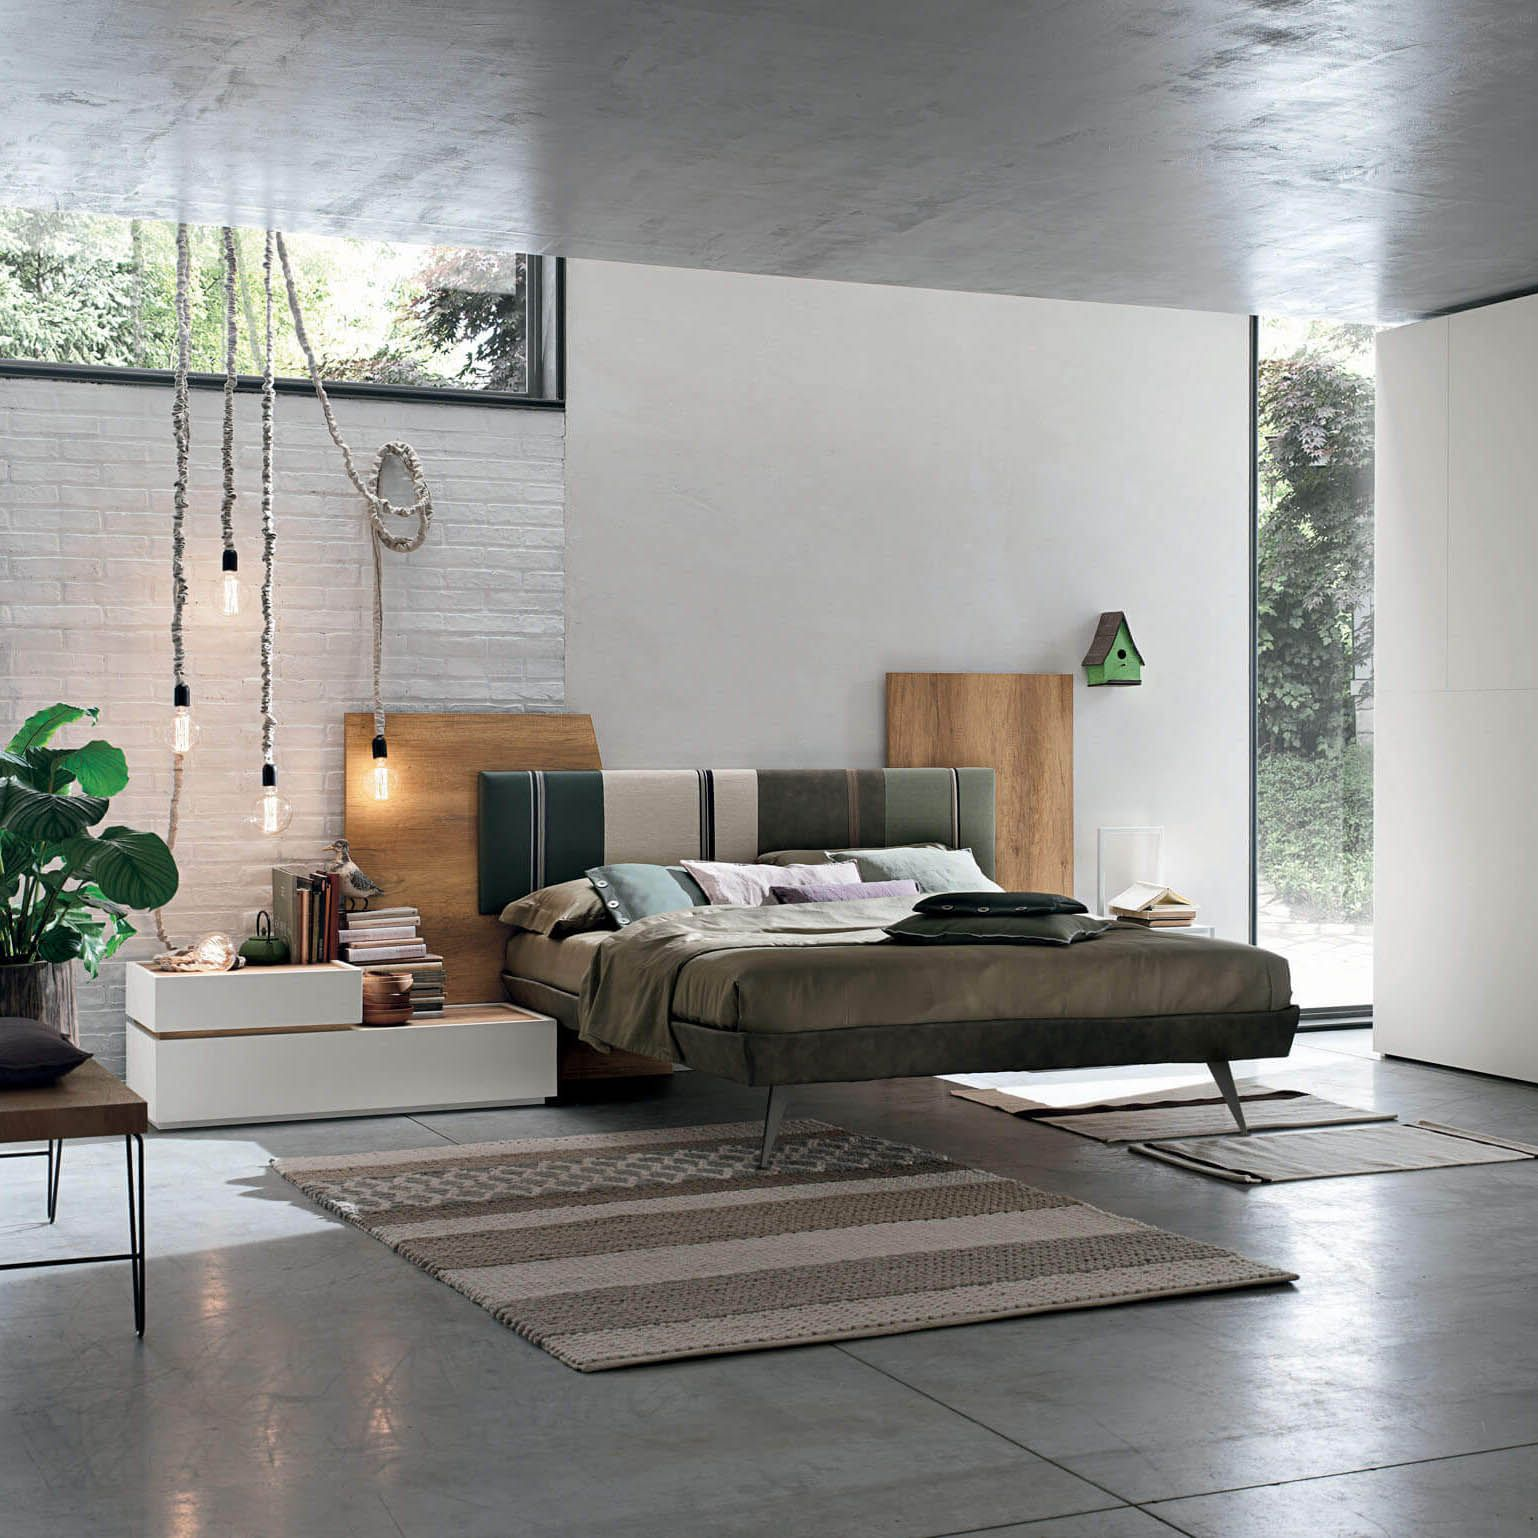 Diagonal Bed Tomasella Italy Furniture Design Modern Modern Bedroom Living Room Wall Units